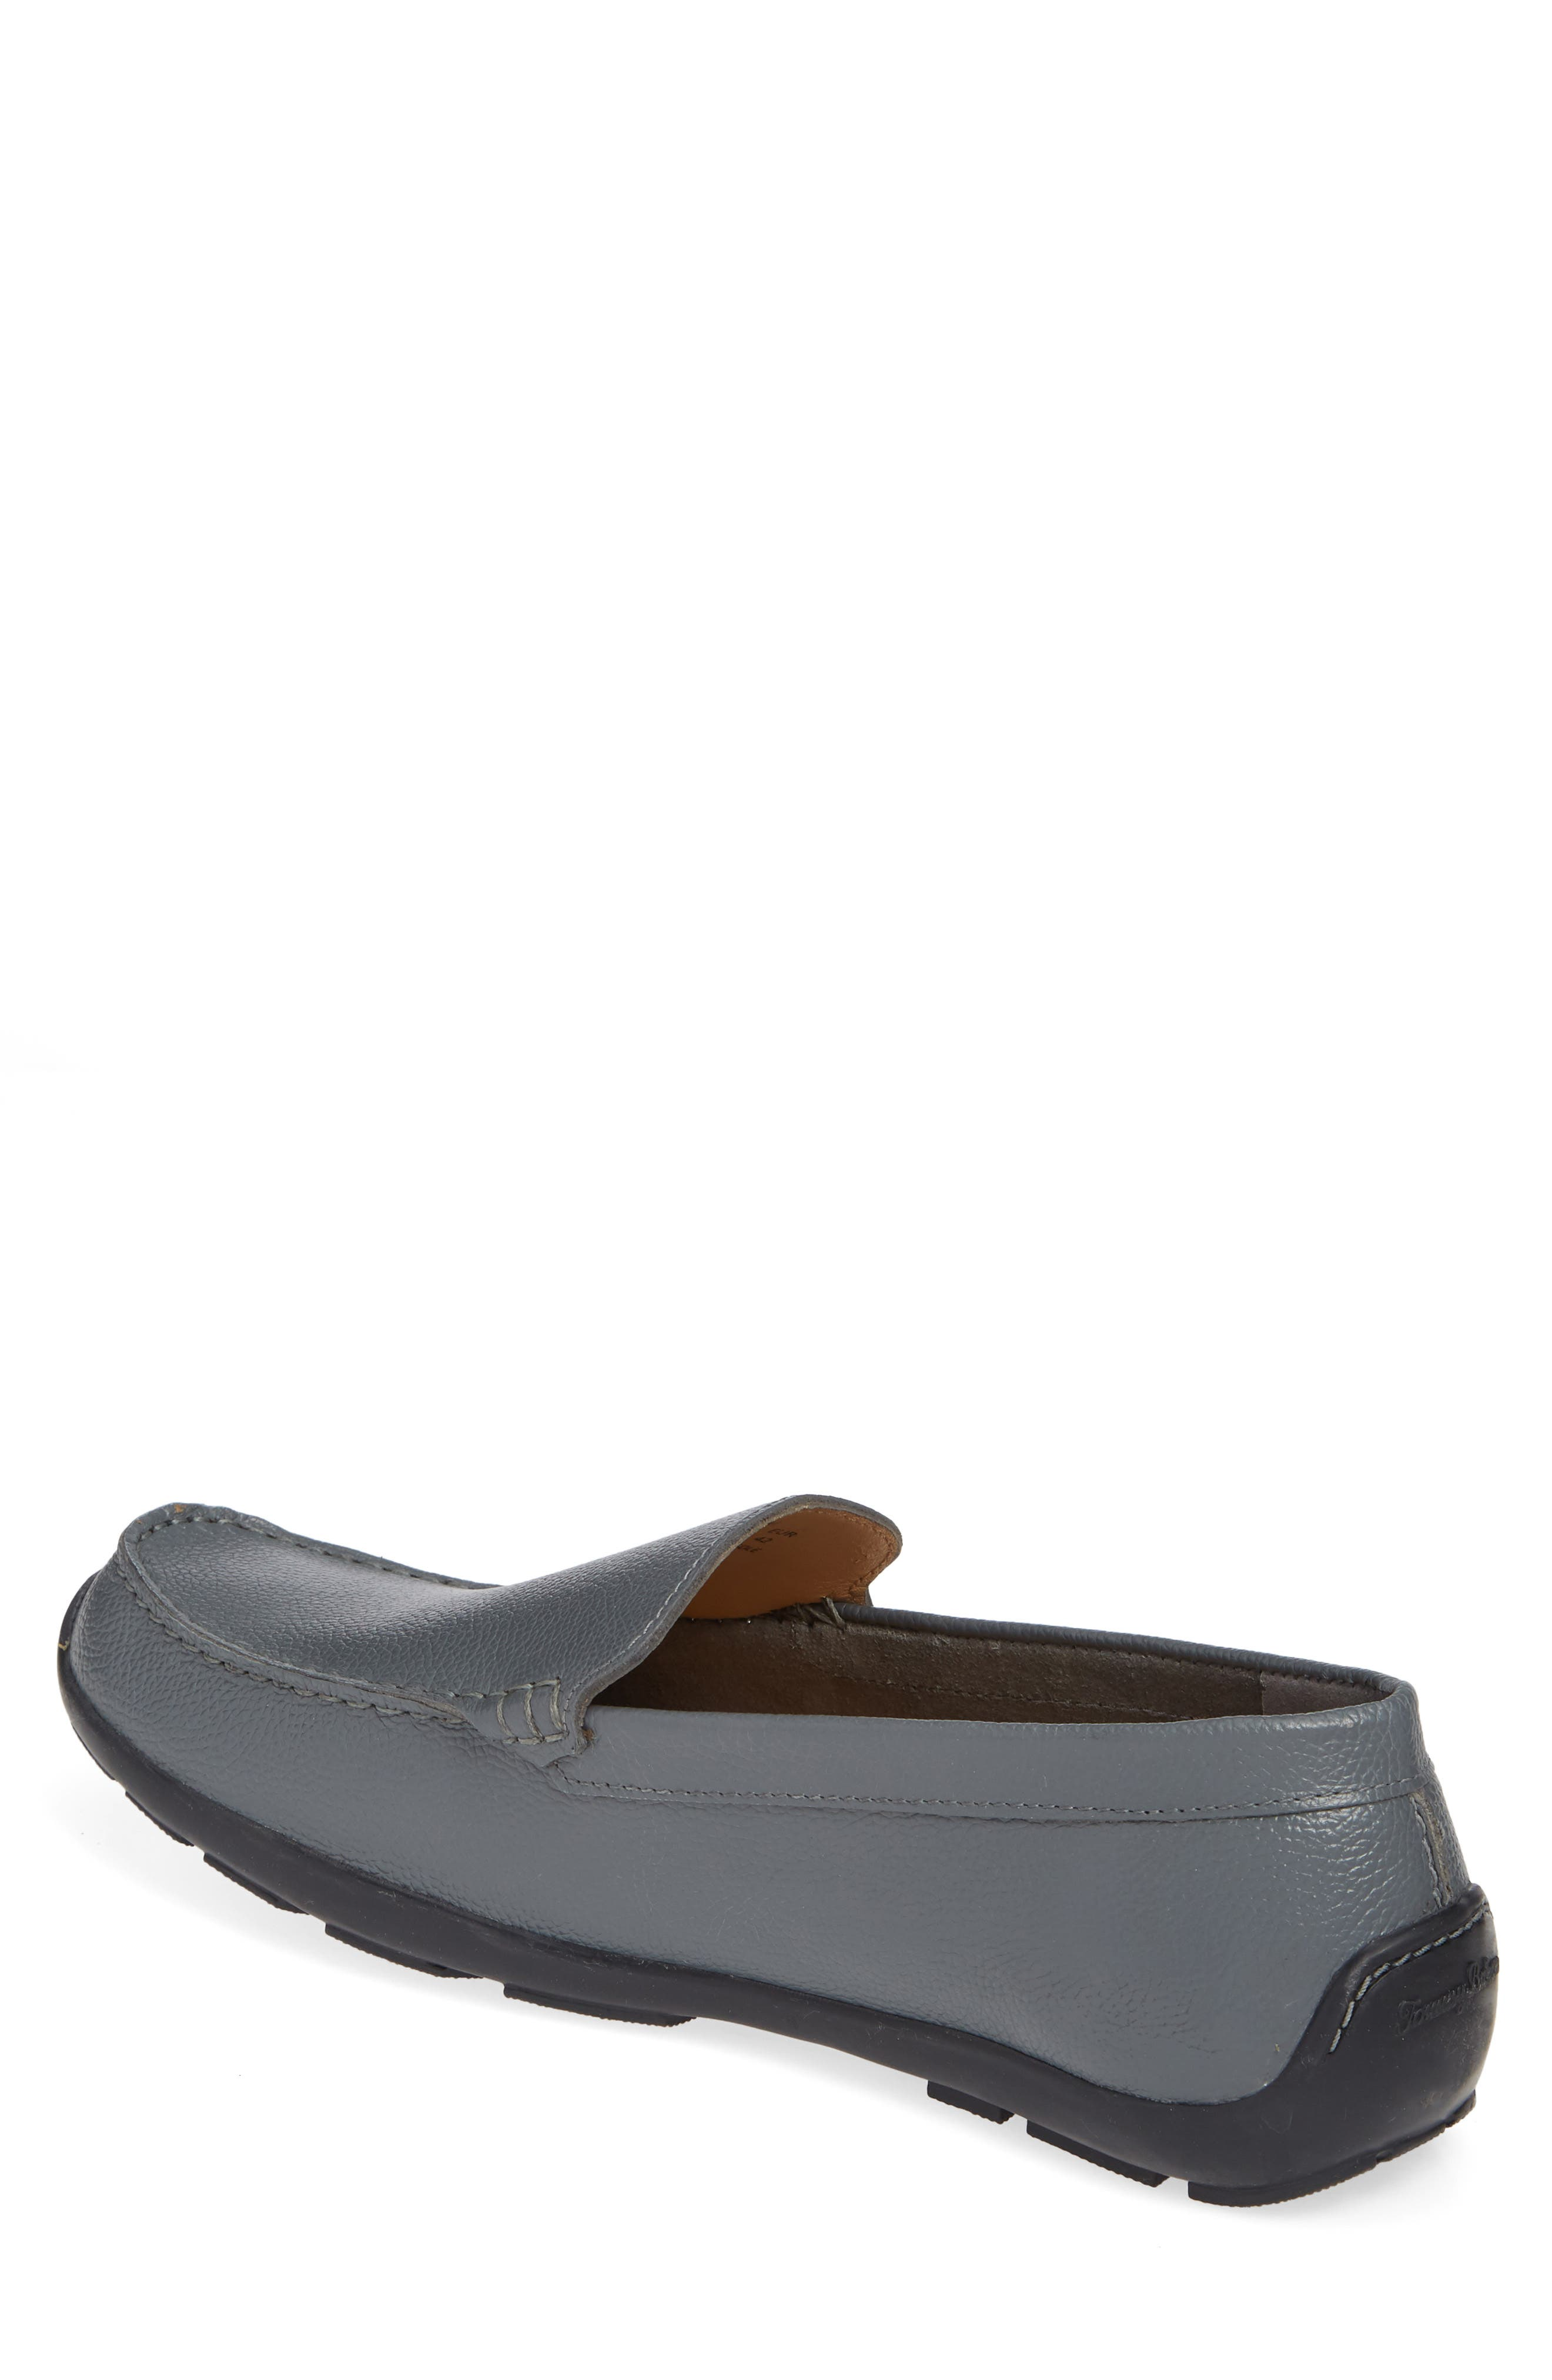 Orion Venetian Loafer,                             Alternate thumbnail 2, color,                             GREY TUMBLED LEATHER